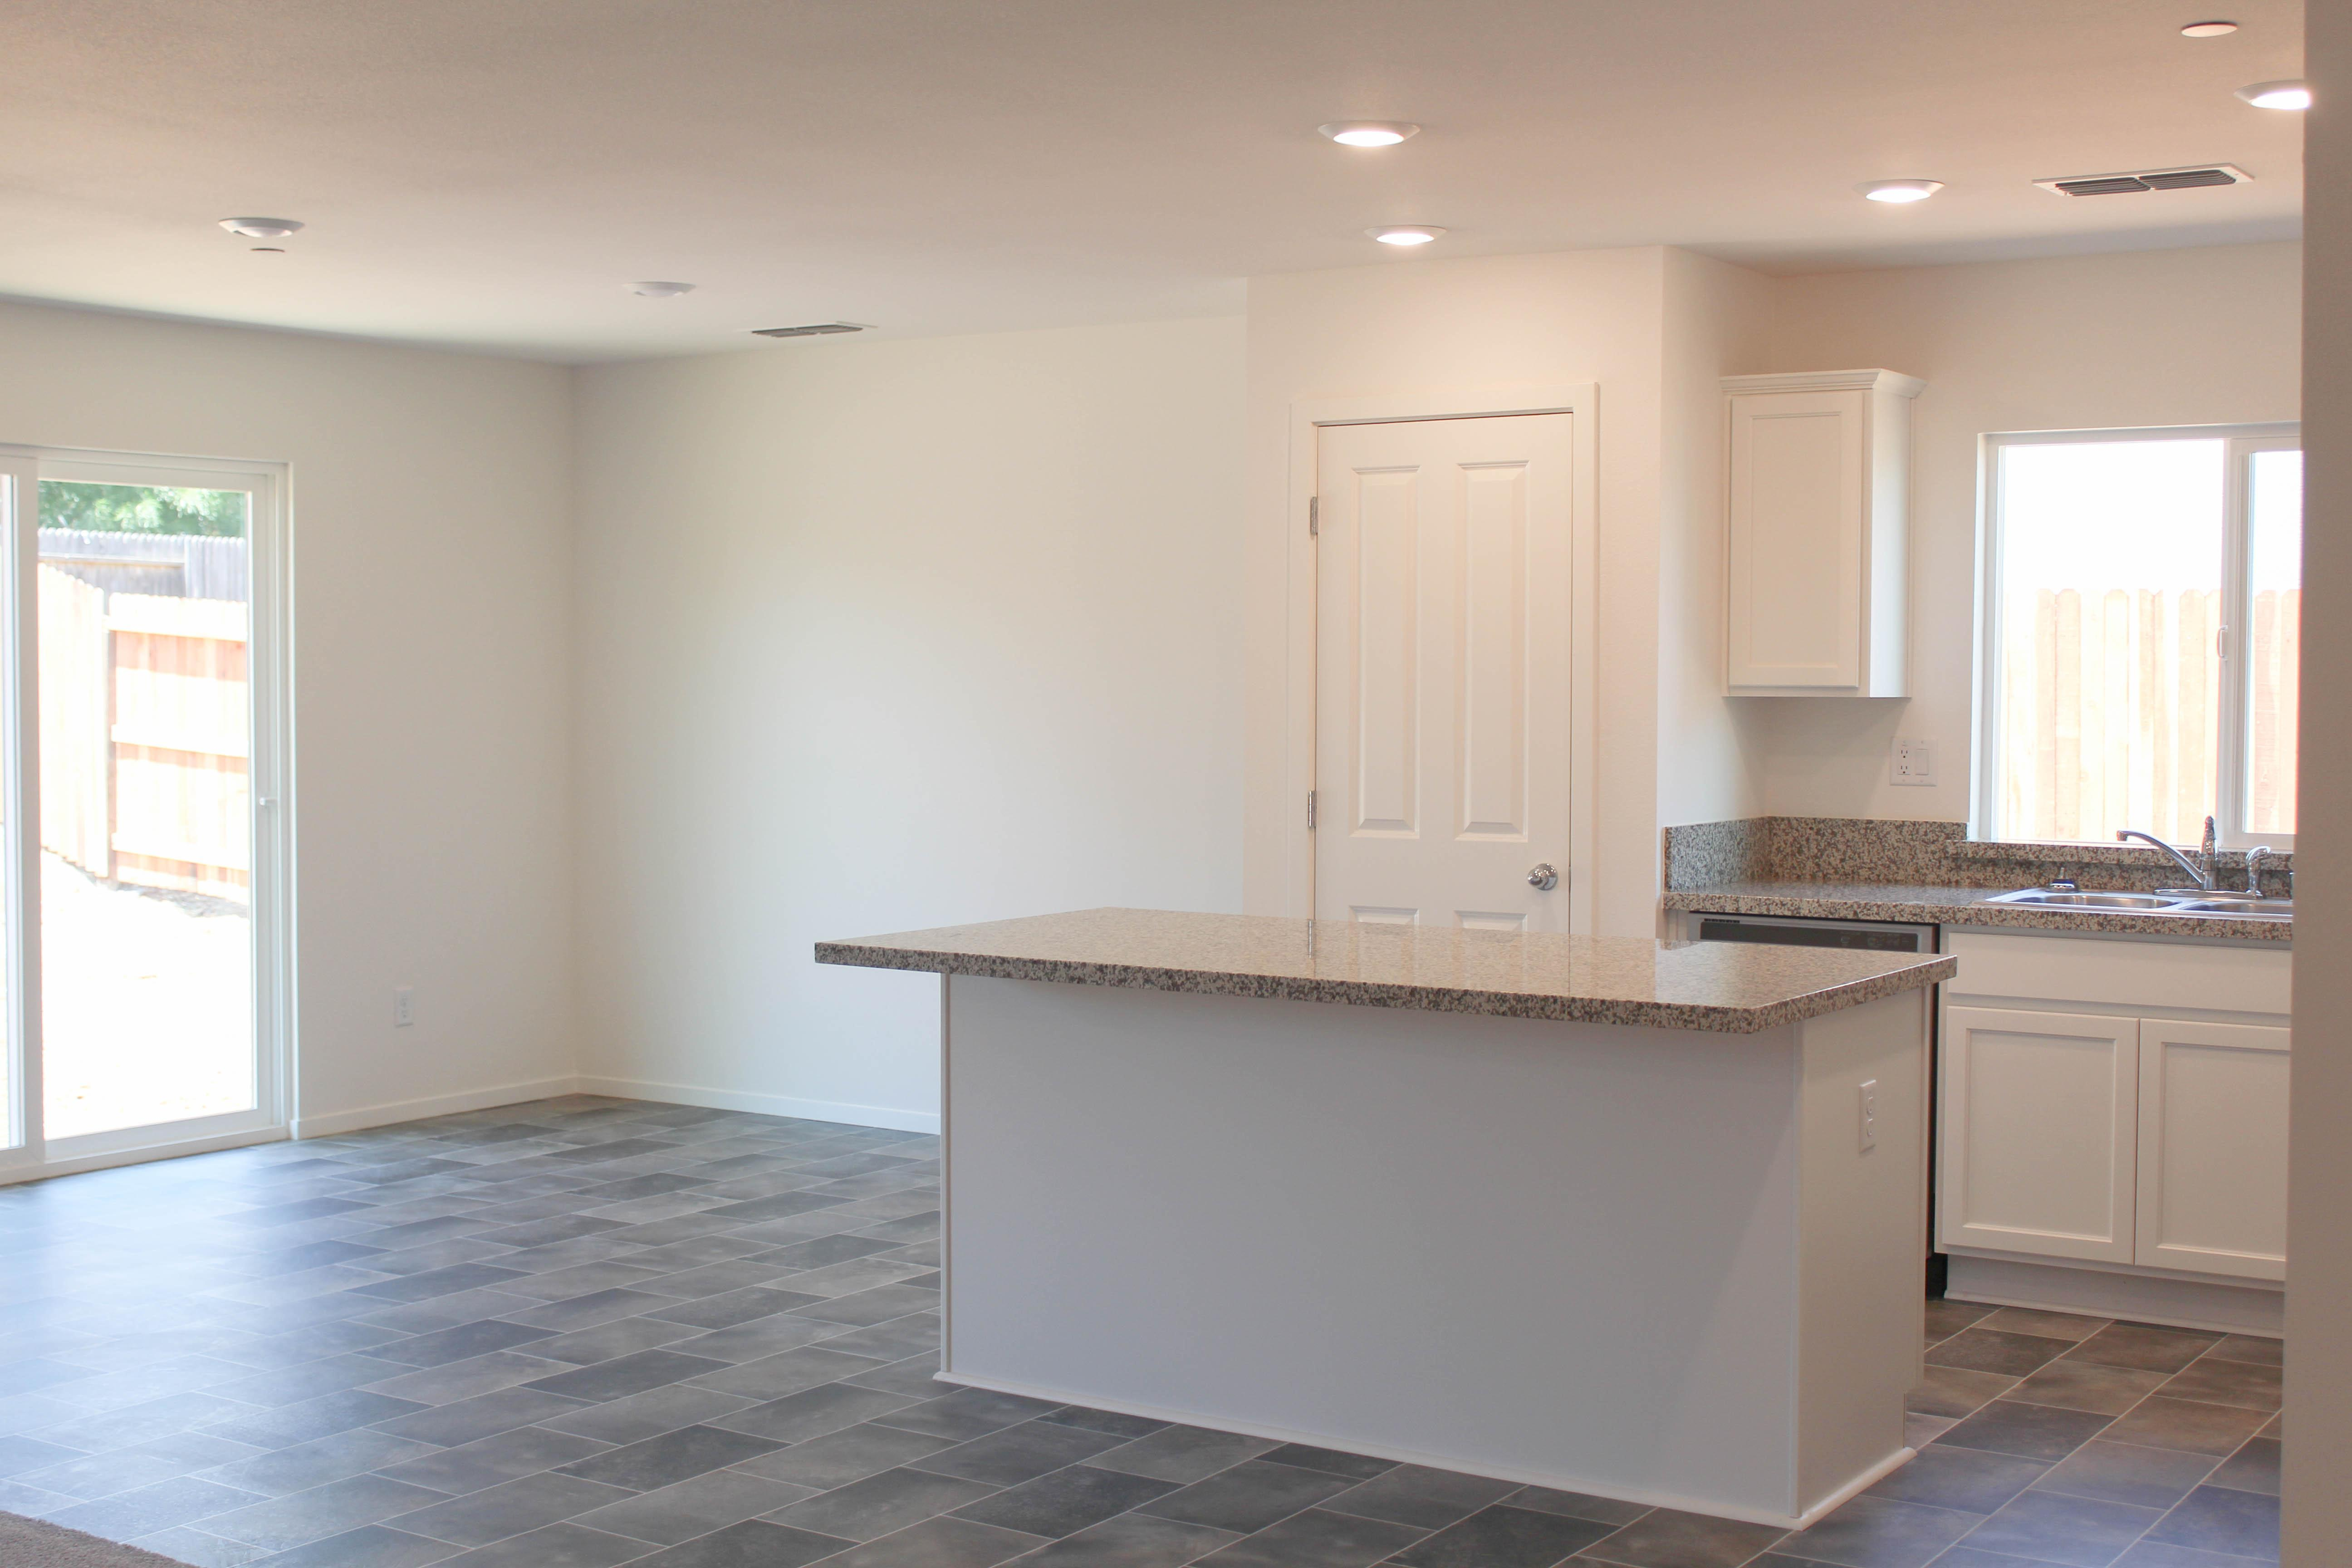 Kitchen featured in the 3C By Crowne Communities in Chico, CA